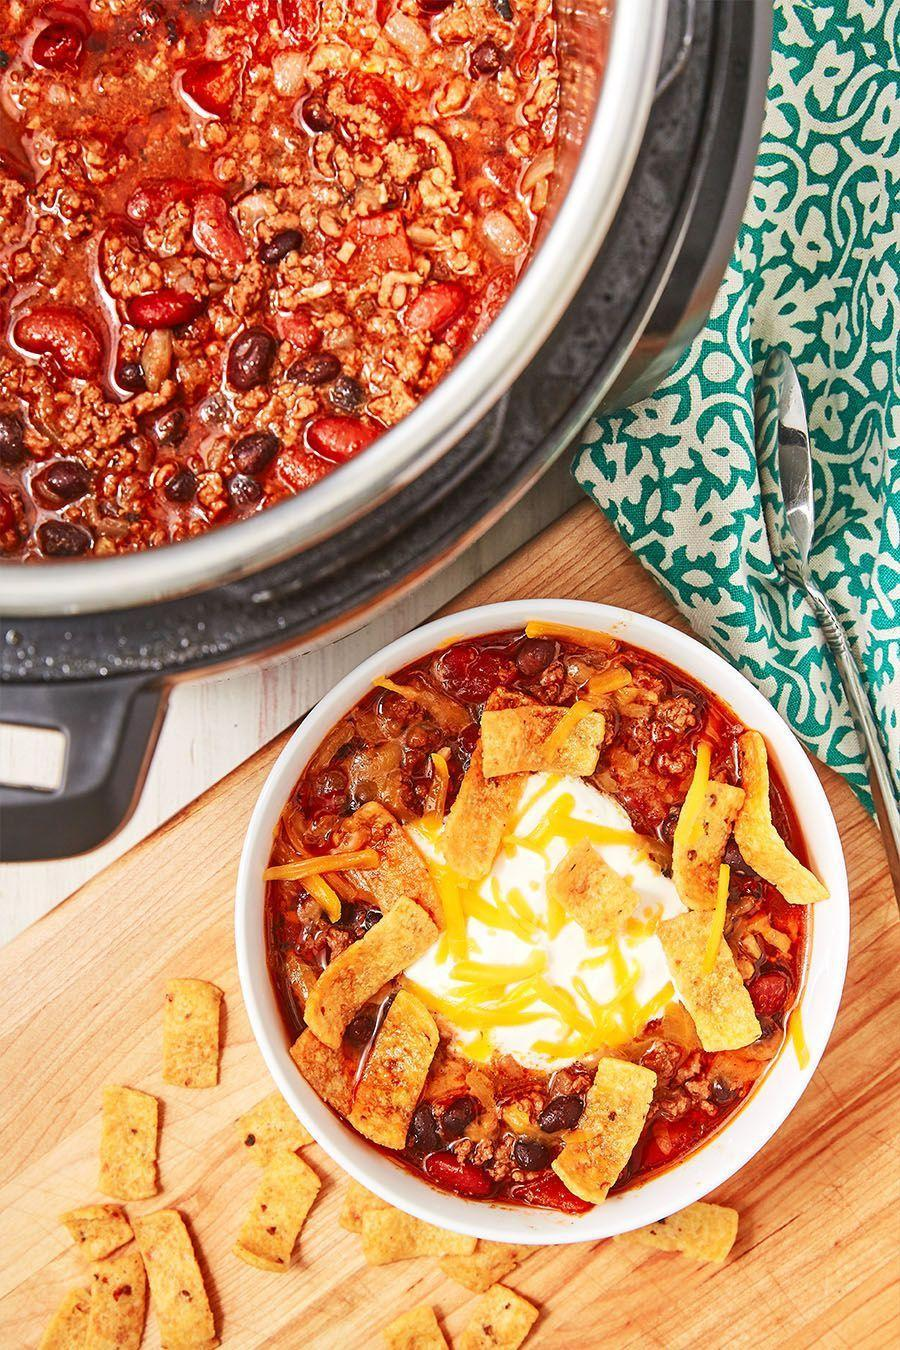 """<p>If there's one thing the Instant Pot does well, it's chilli. The pot takes away all of the legwork of standing and stirring over the stove for forever. This is now our favourite <a href=""""https://www.delish.com/uk/cooking/recipes/a28886316/best-homemade-chilli-recipe/"""" rel=""""nofollow noopener"""" target=""""_blank"""" data-ylk=""""slk:Chilli Recipe"""" class=""""link rapid-noclick-resp"""">Chilli Recipe</a>. It's so flavourful! Swap in different beans or use minced turkey instead. It will all come out delicious! </p><p>Get the <a href=""""https://www.delish.com/uk/cooking/recipes/a30208142/instant-pot-chili-recipe/"""" rel=""""nofollow noopener"""" target=""""_blank"""" data-ylk=""""slk:Instant Pot Chilli"""" class=""""link rapid-noclick-resp"""">Instant Pot Chilli</a> recipe.</p>"""